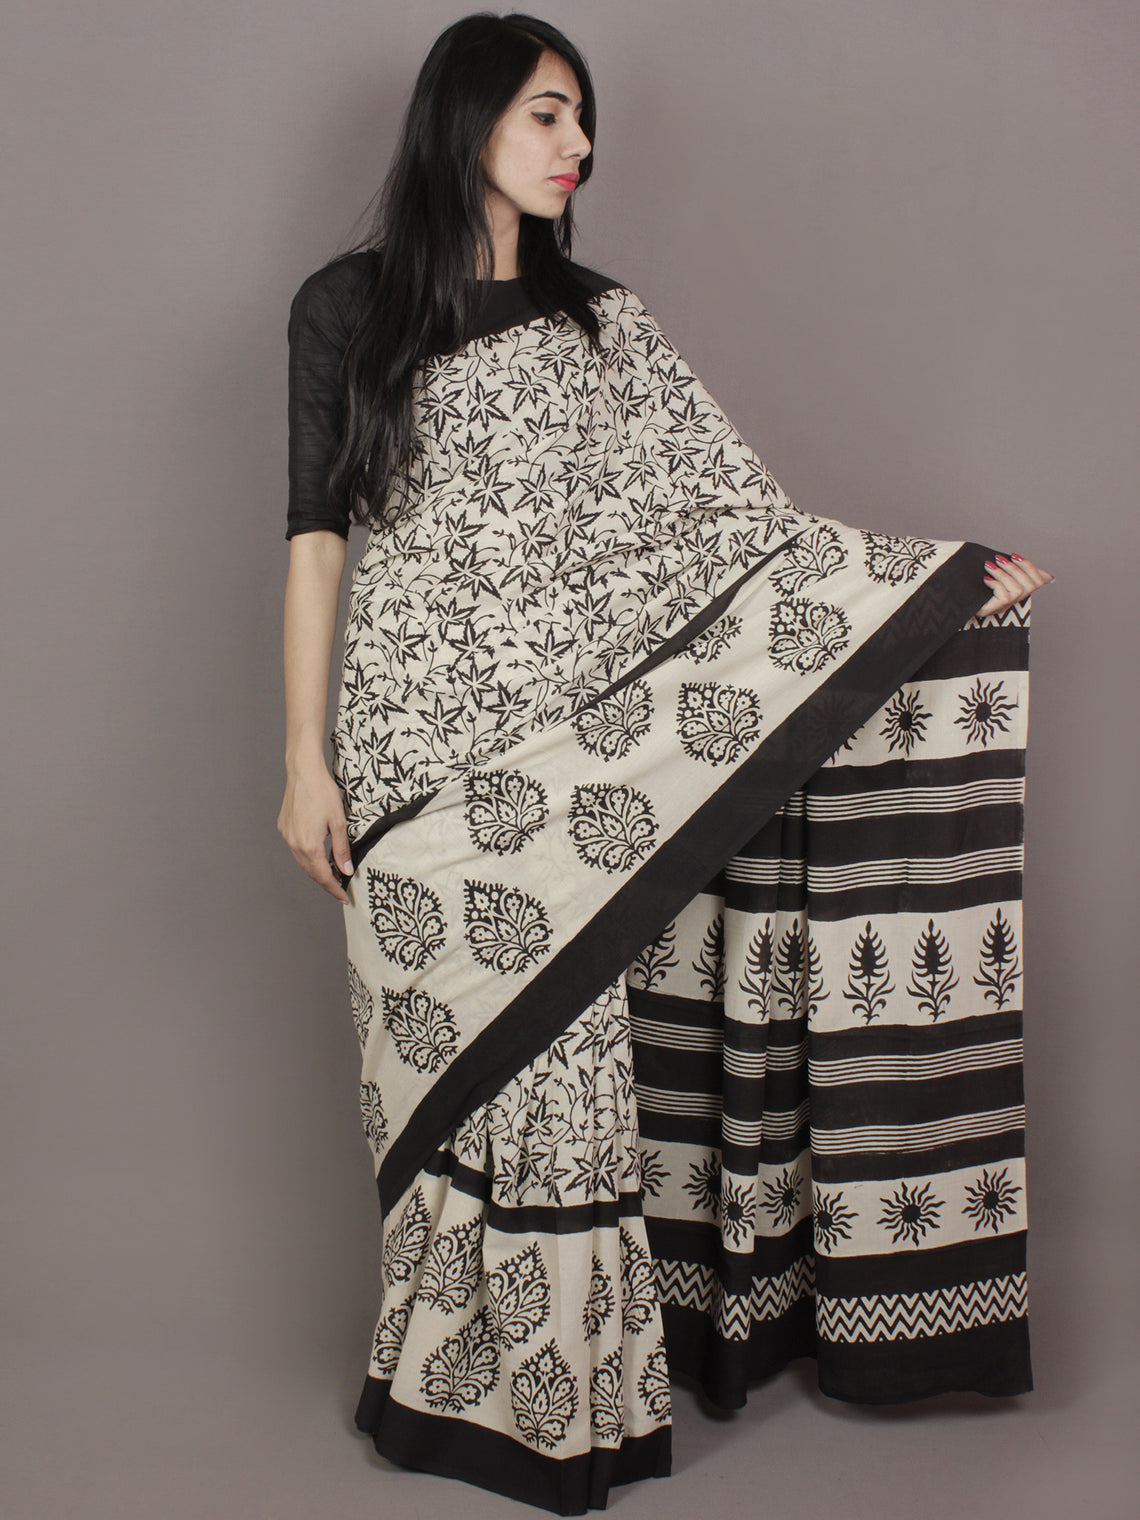 Ivory Black Hand Block Printed in Natural Colors Cotton Mul Saree - S031701170